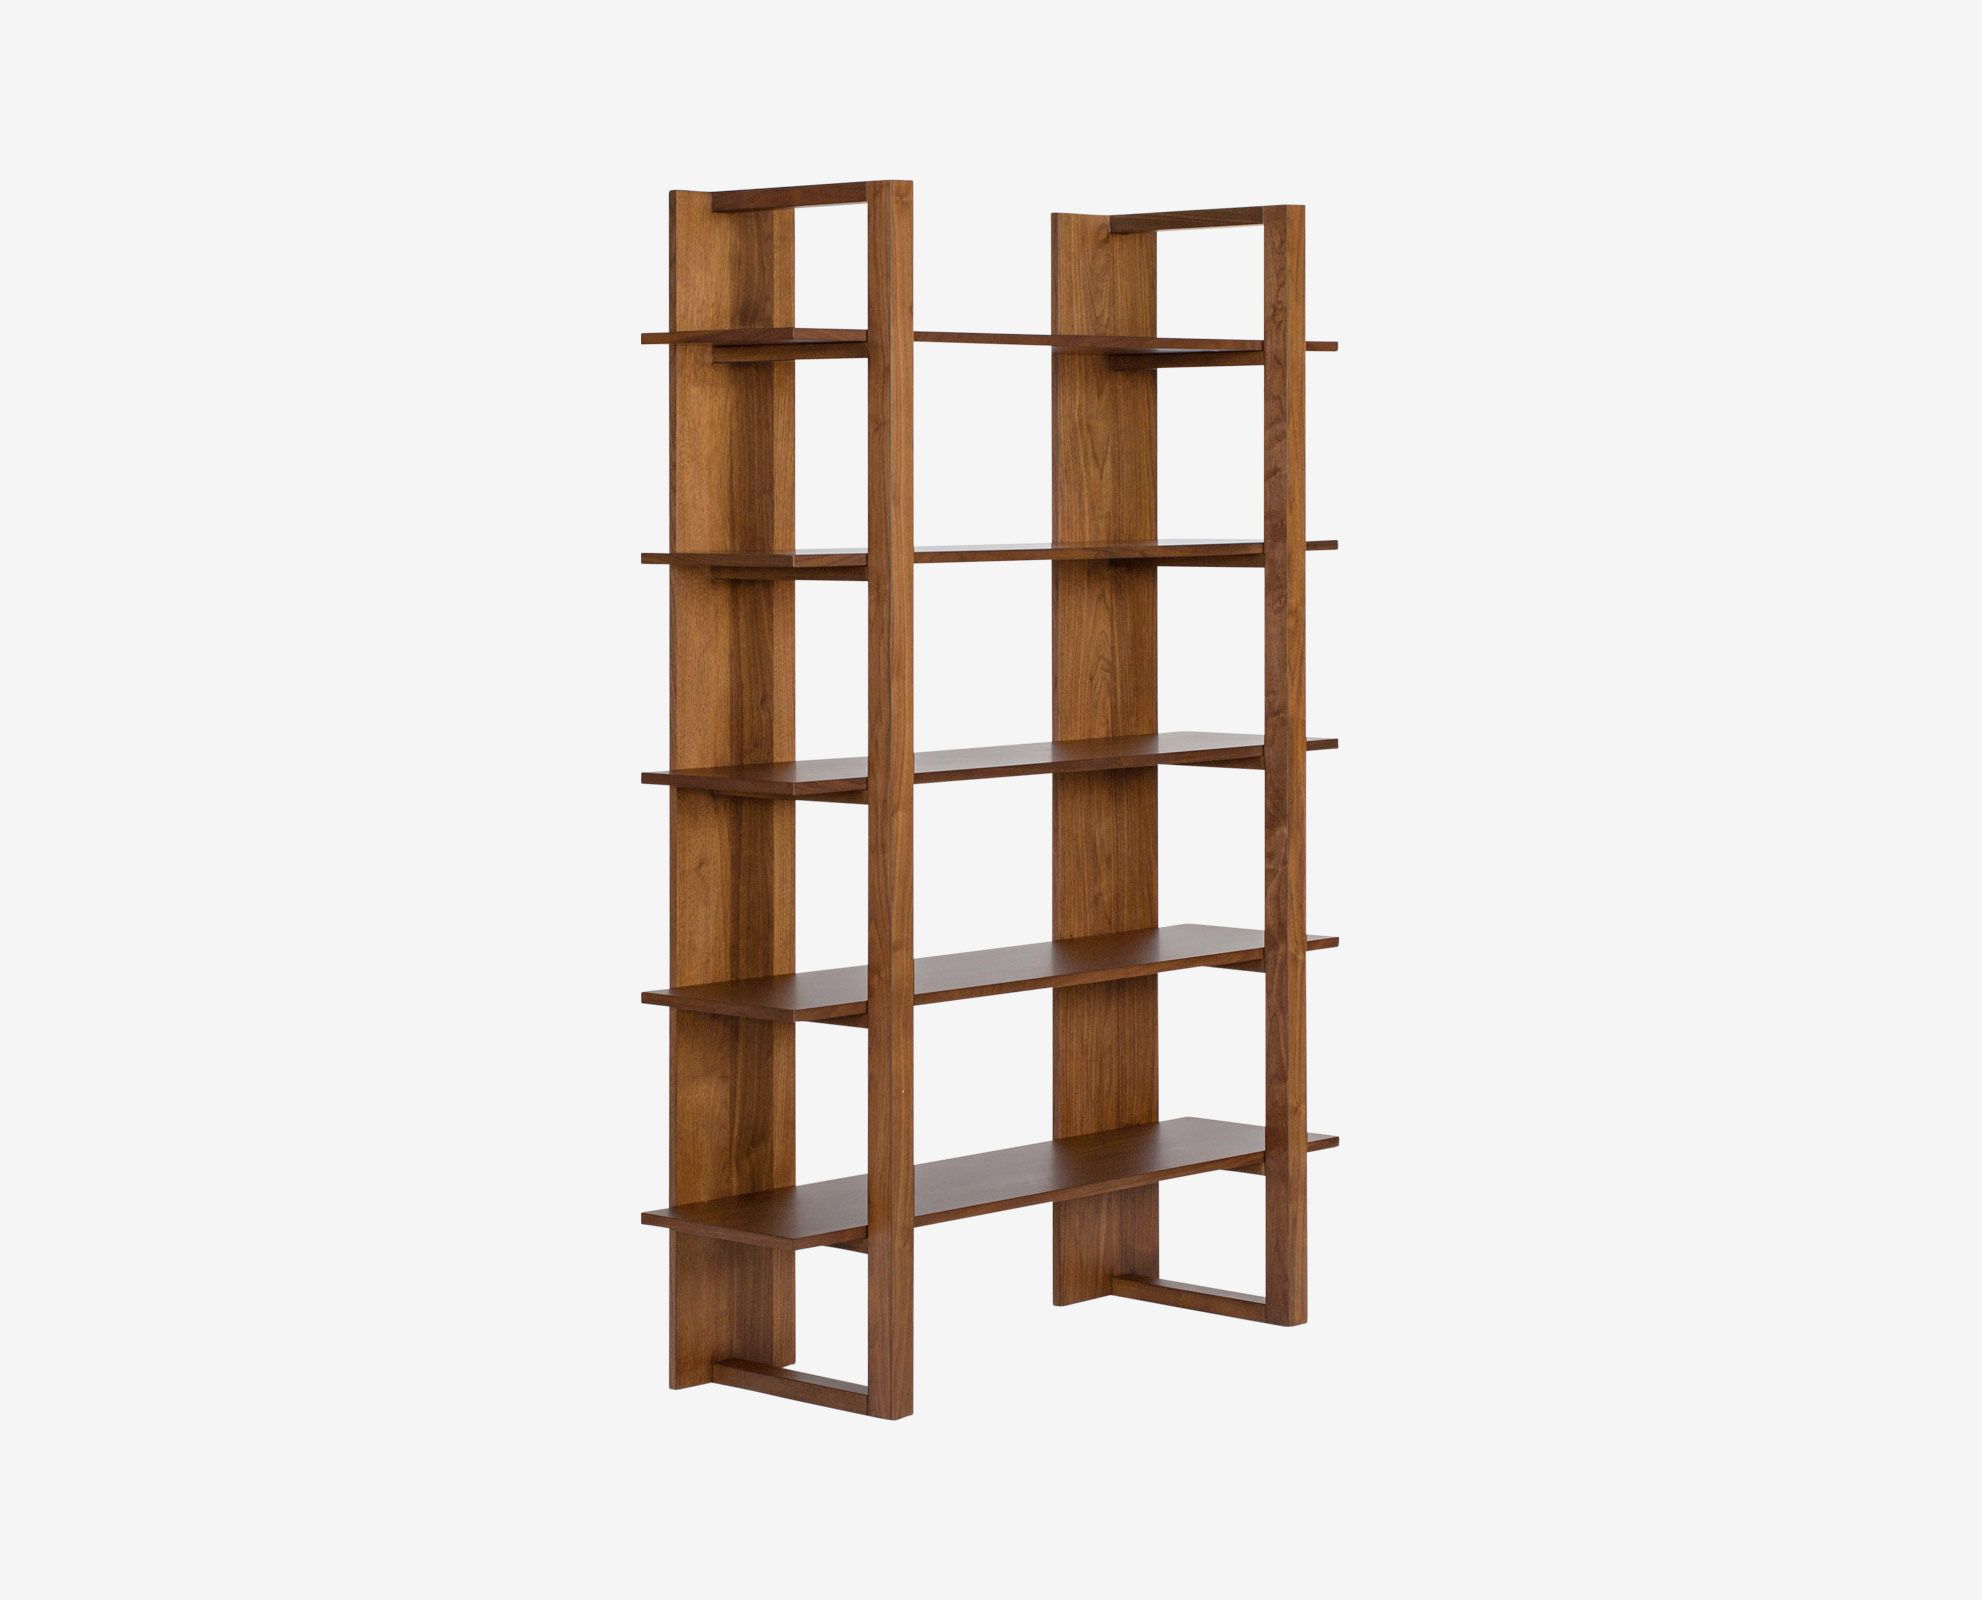 Dania The Open Design Of The Kring Bookcase Lends A Light And Airy Feel To Your Display Space With Five Open Shelv Bookcase Scandinavian Design Walnut Veneer